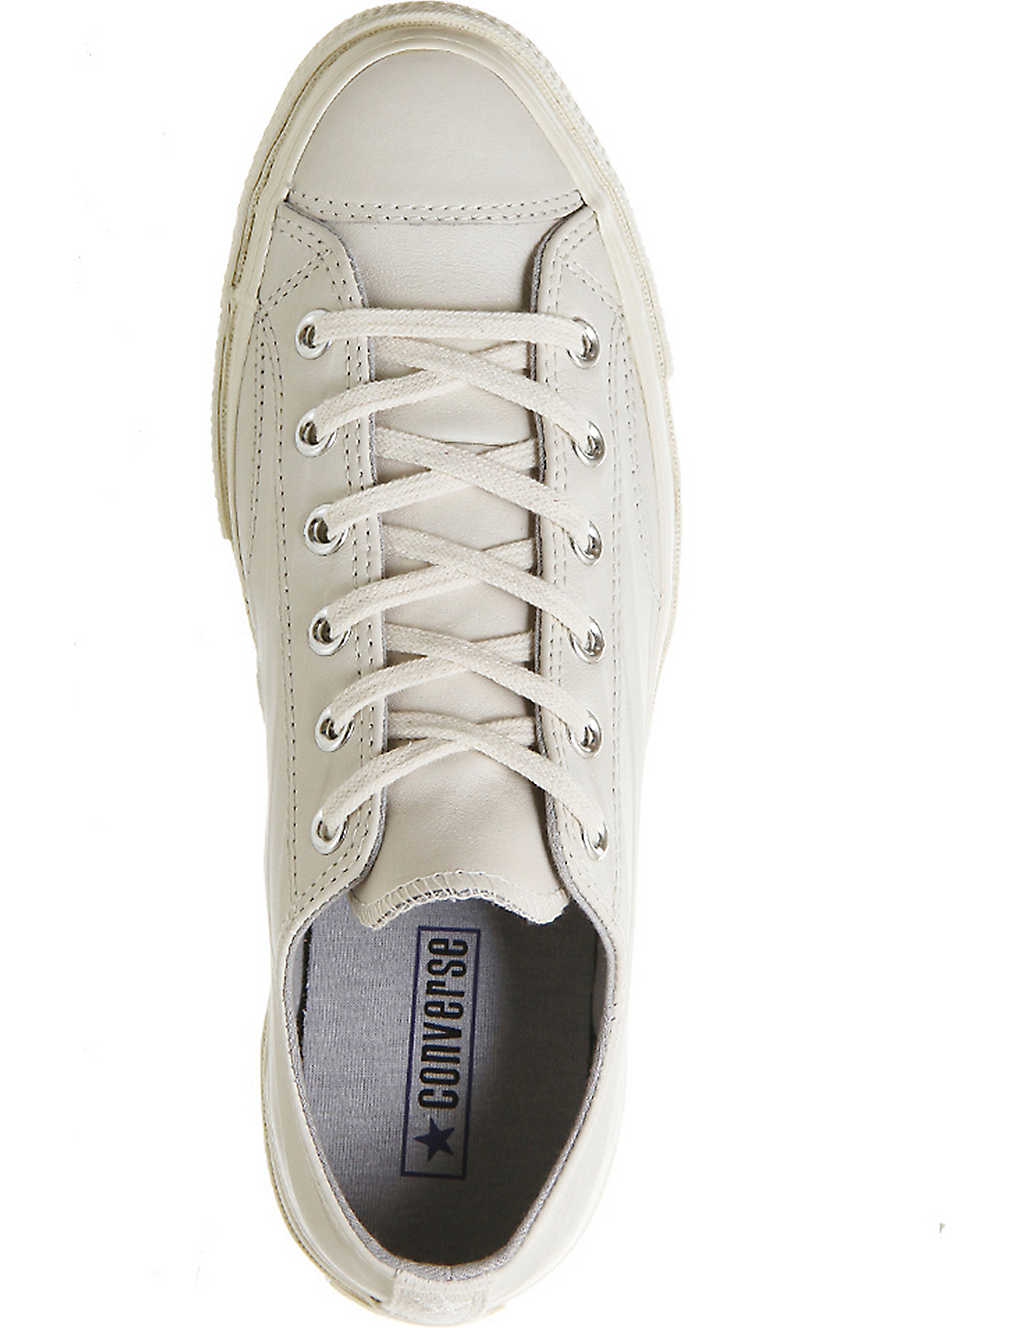 6648b7f2d416 CONVERSE - All star ox 70s leather low-tops